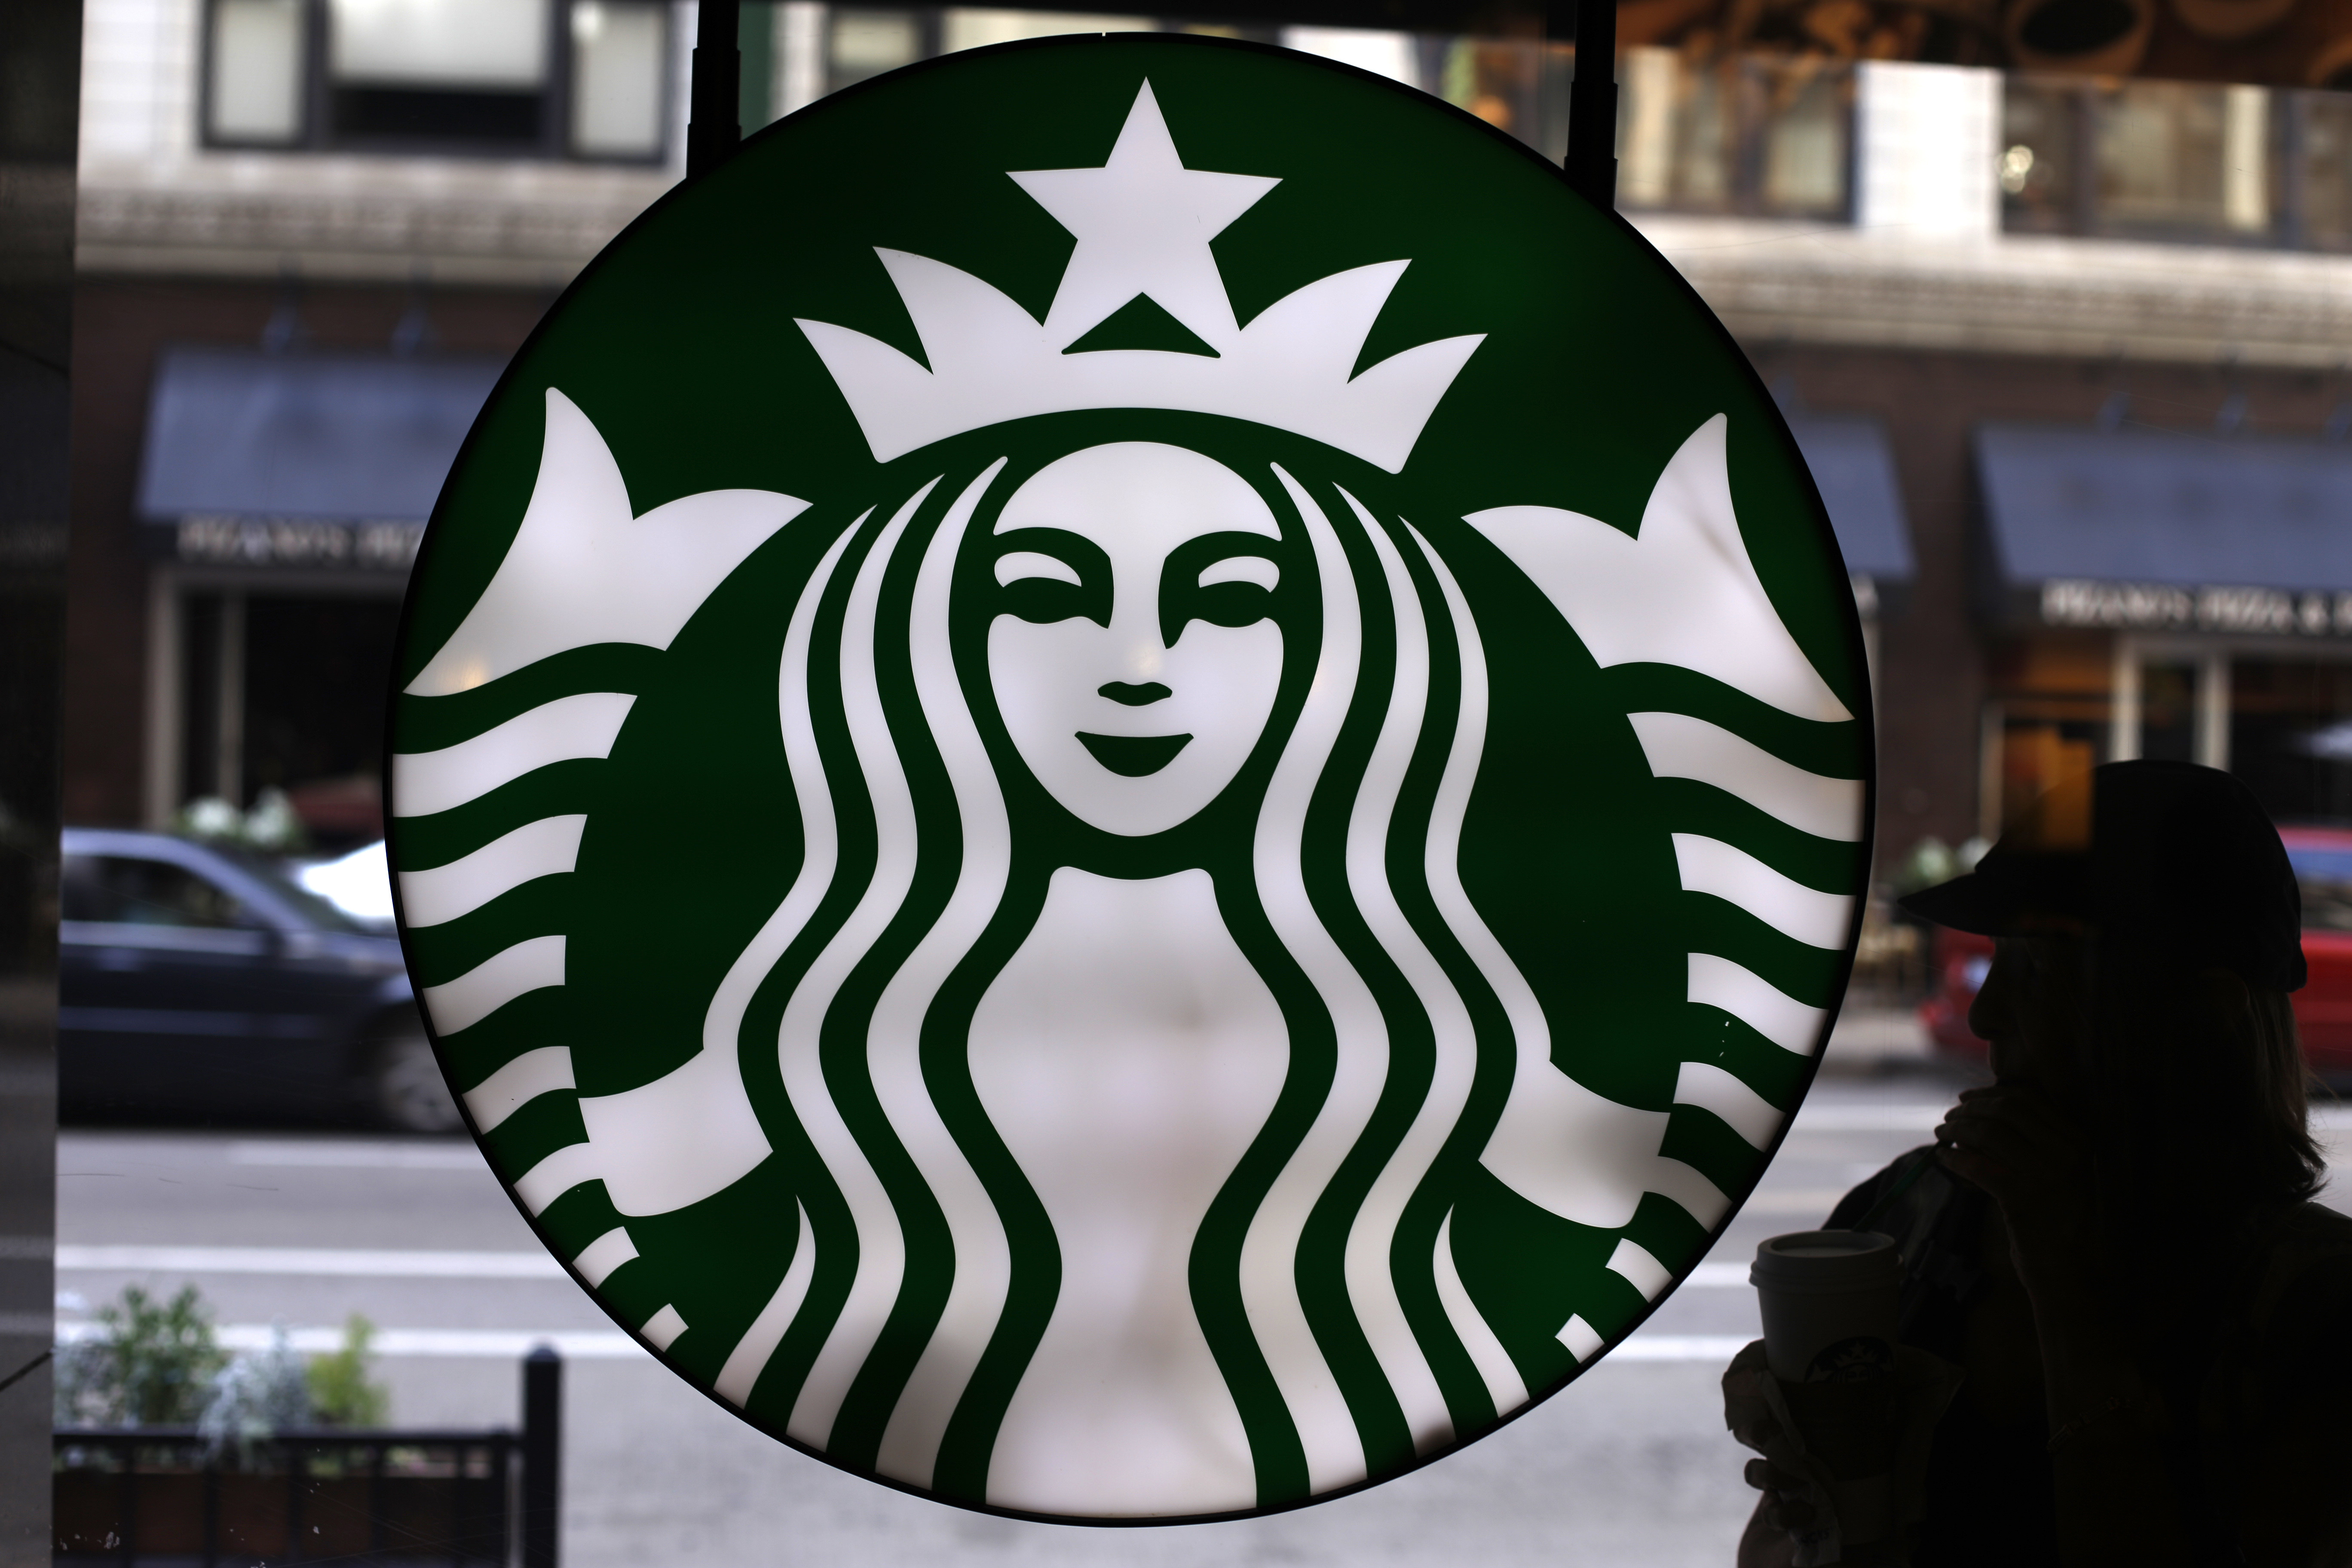 Starbucks prices are rising